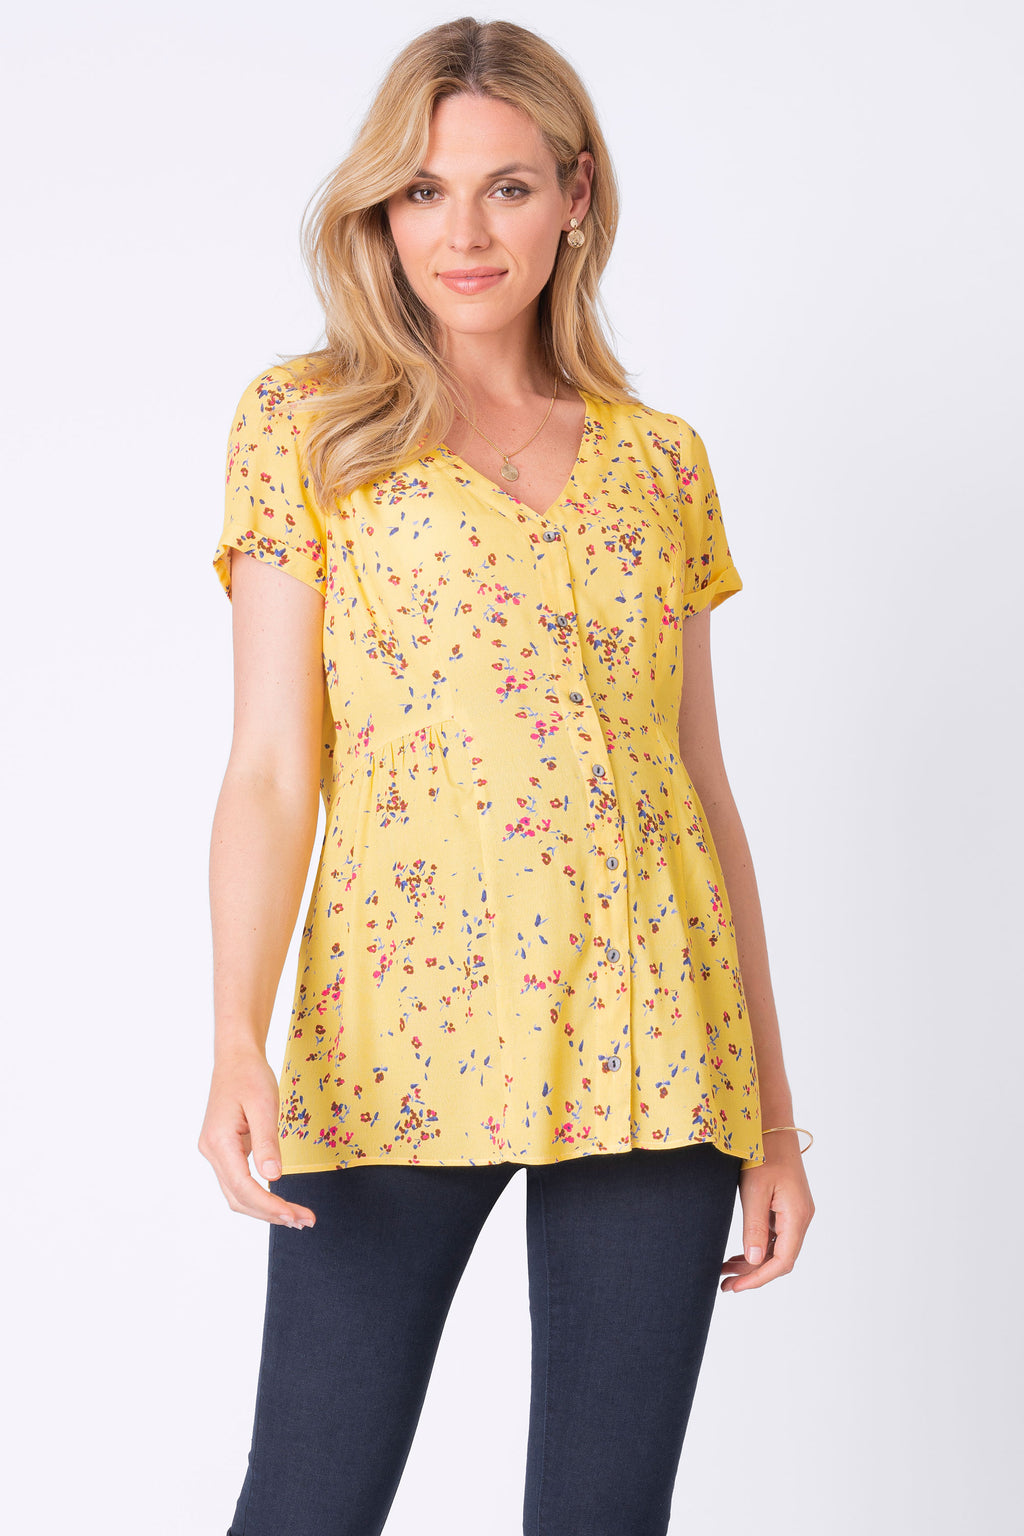 Seraphine Emerly Floral Print Maternity & Nursing Blouse - Seven Women Maternity